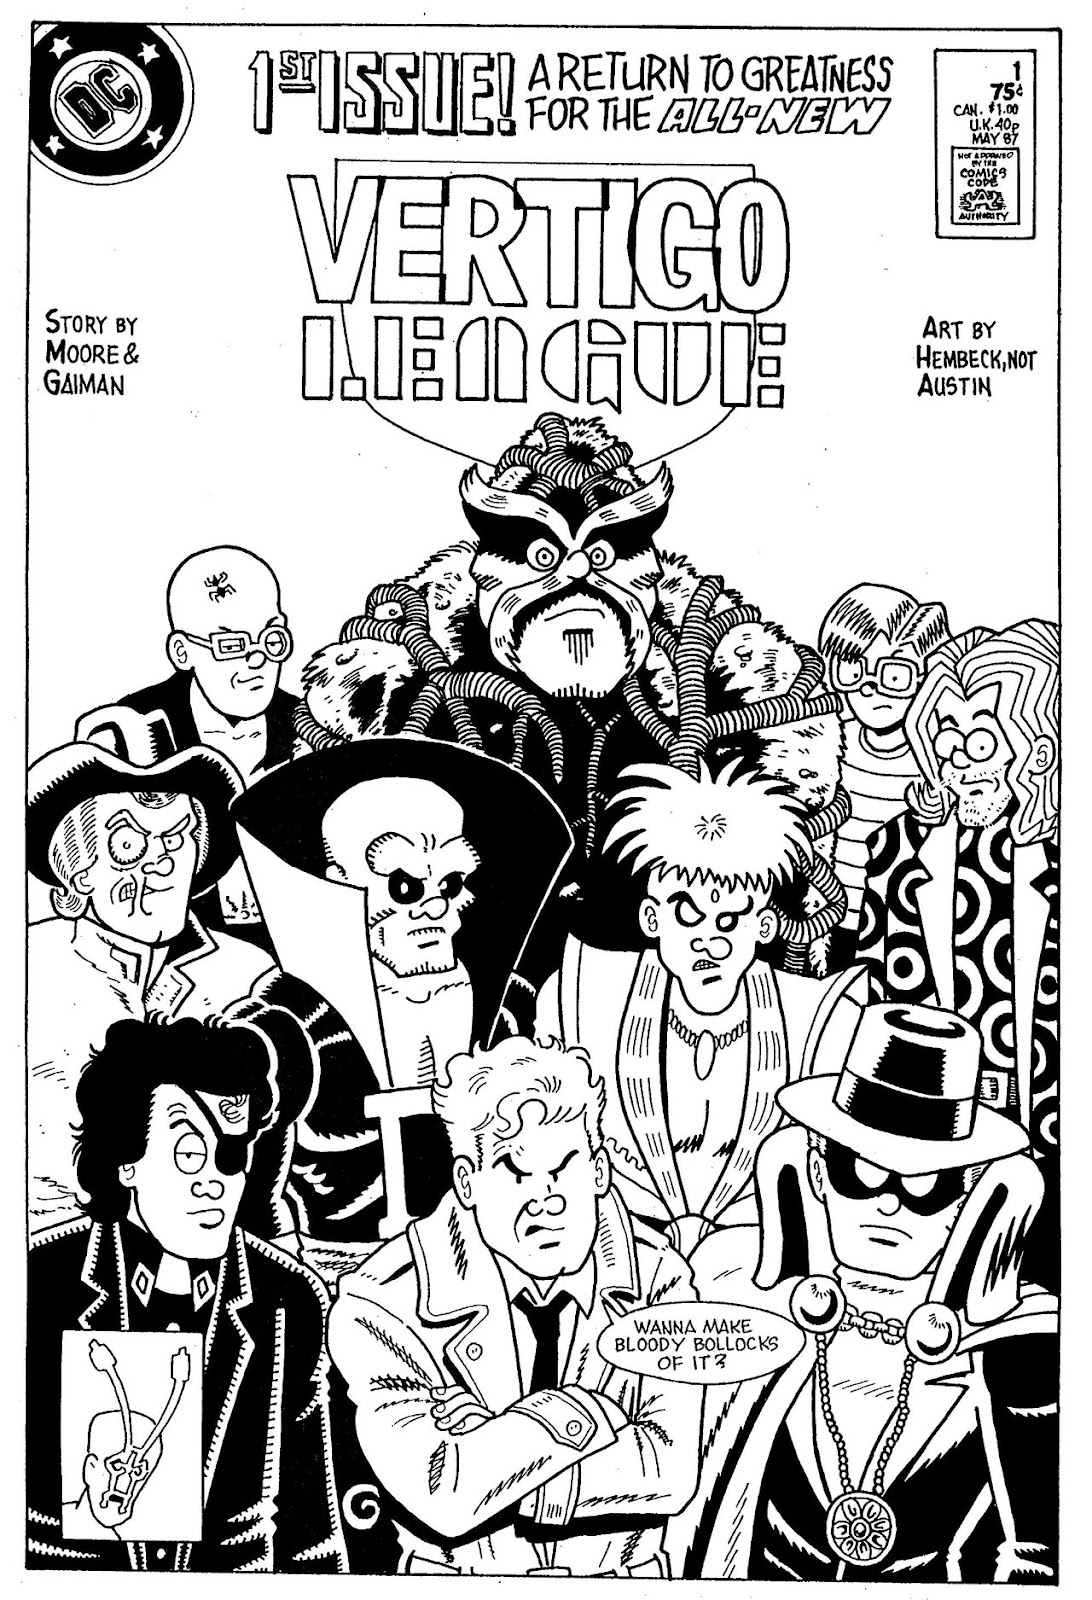 Read online The Nearly Complete Essential Hembeck Archives Omnibus comic -  Issue # TPB (Part 9) - 24